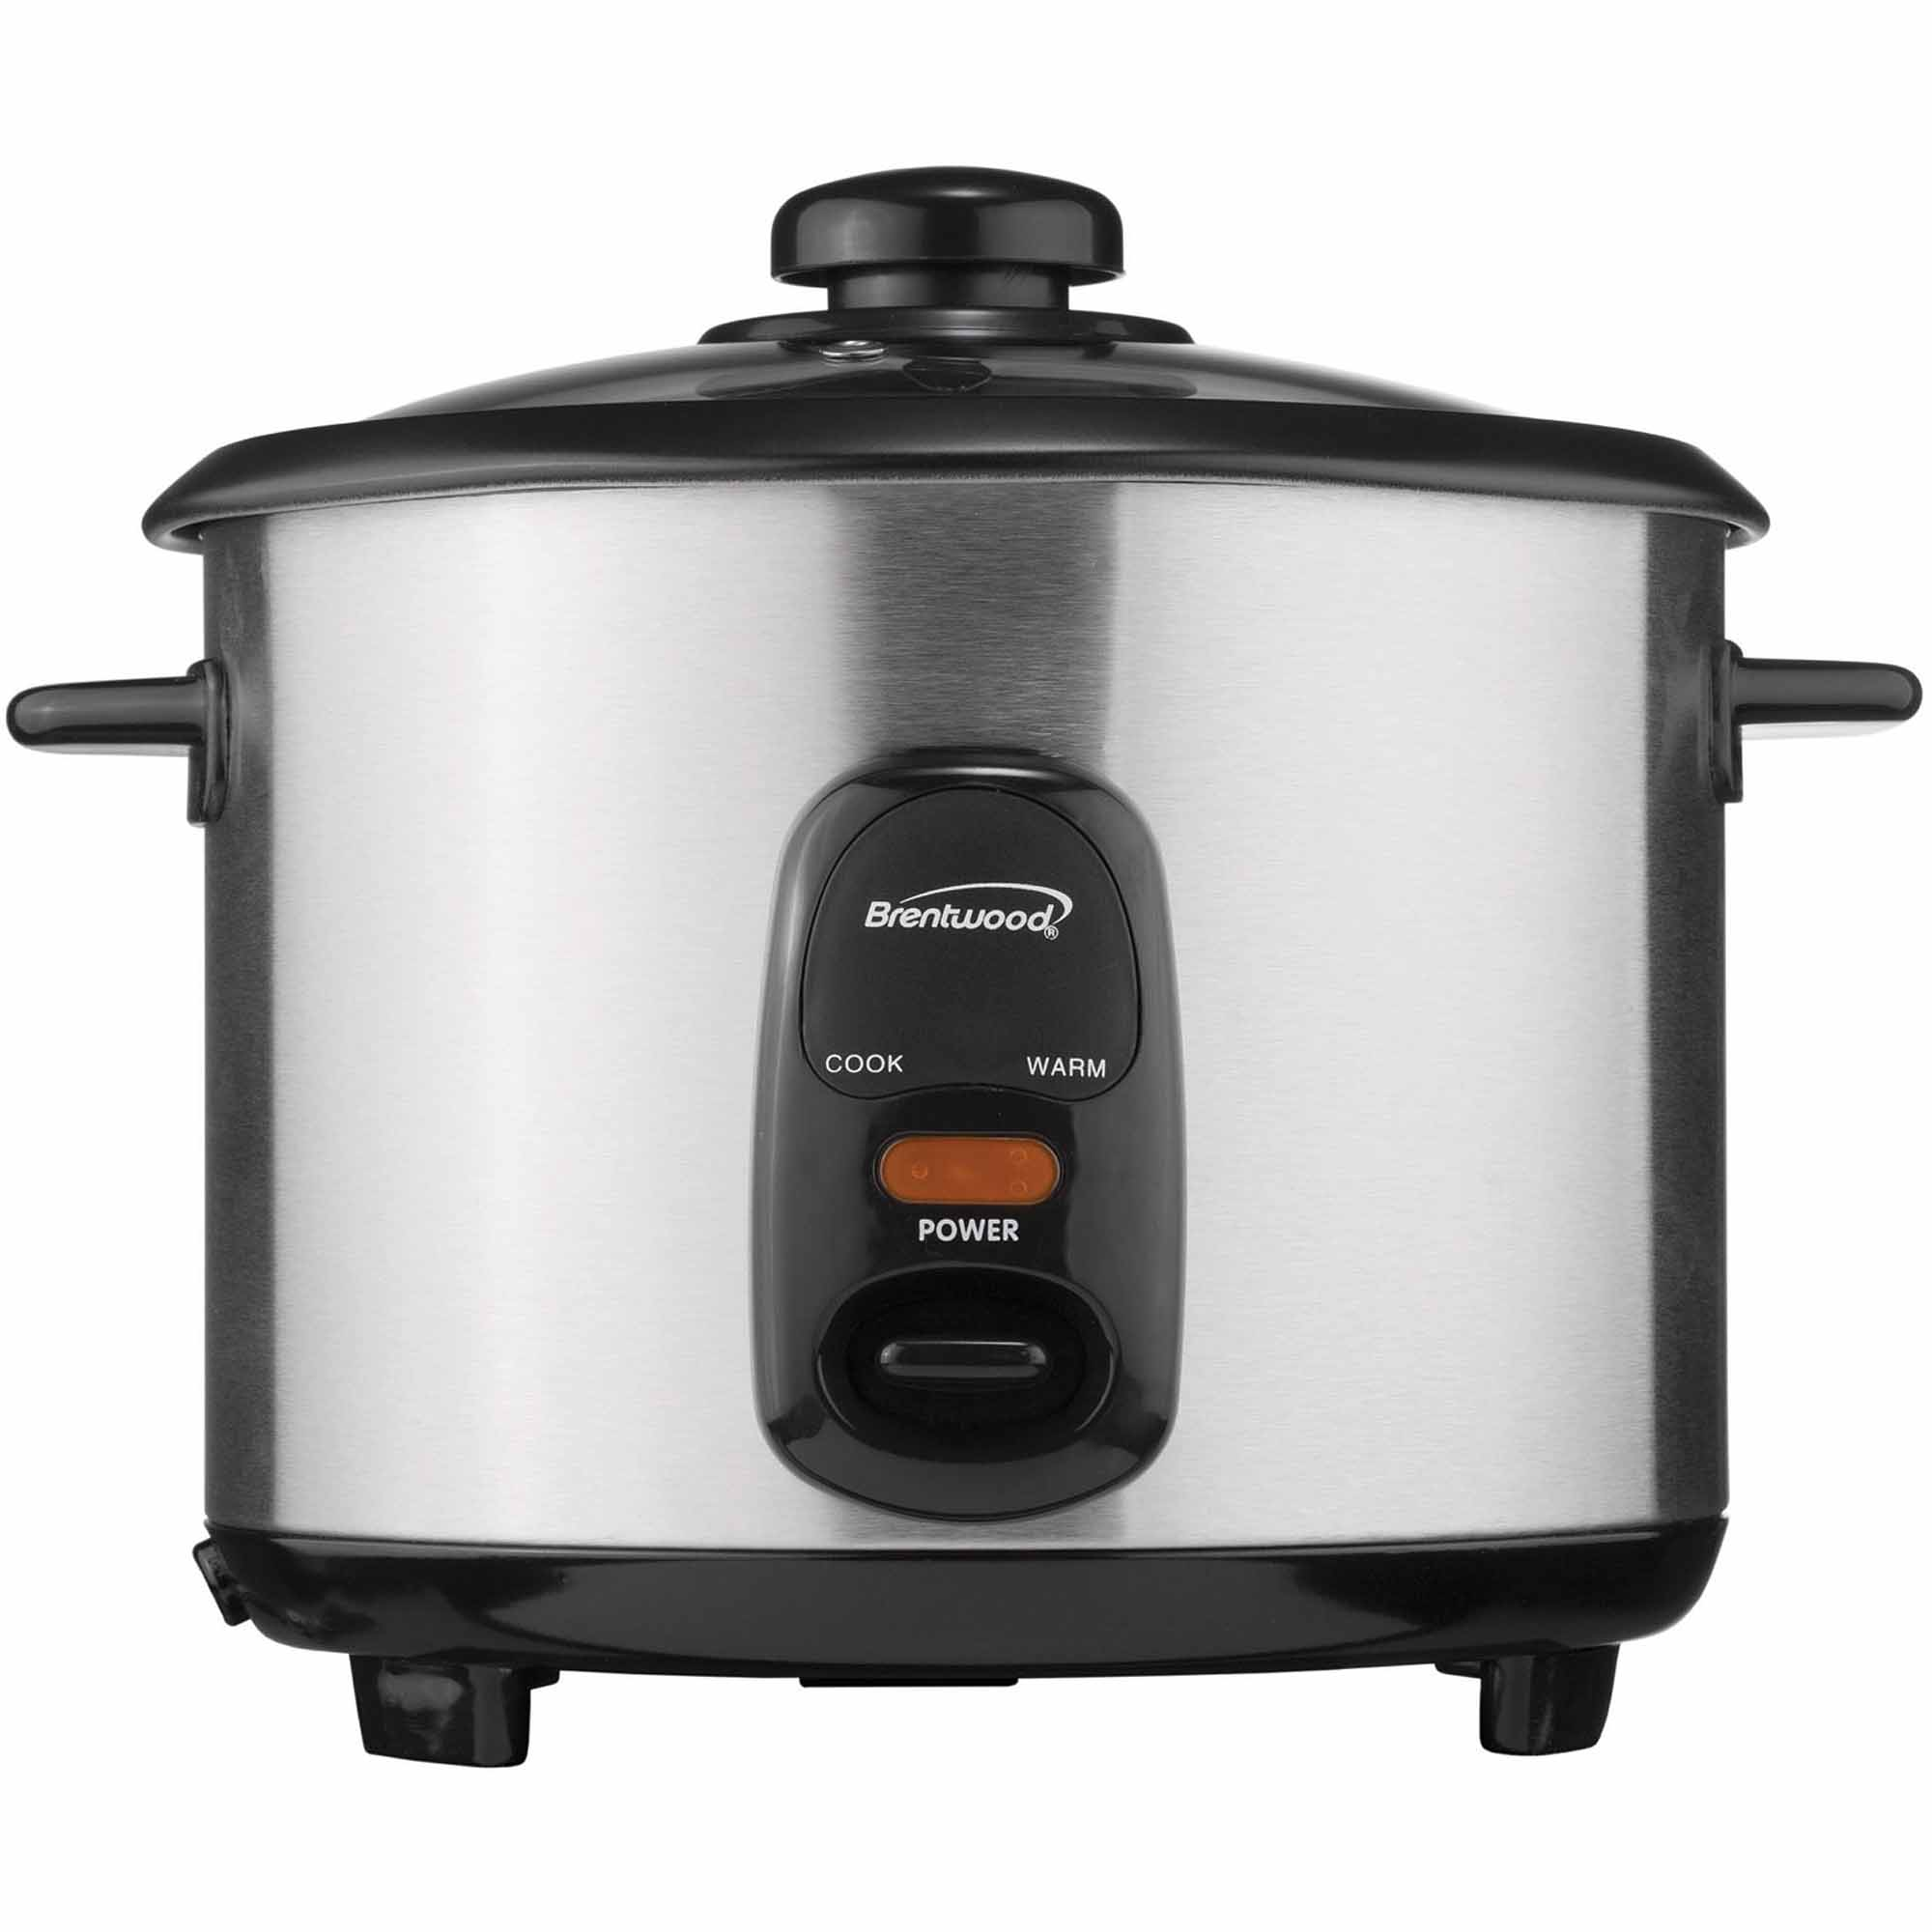 Brentwood TS-15 8-Cup Stainless Steel Rice Cooker